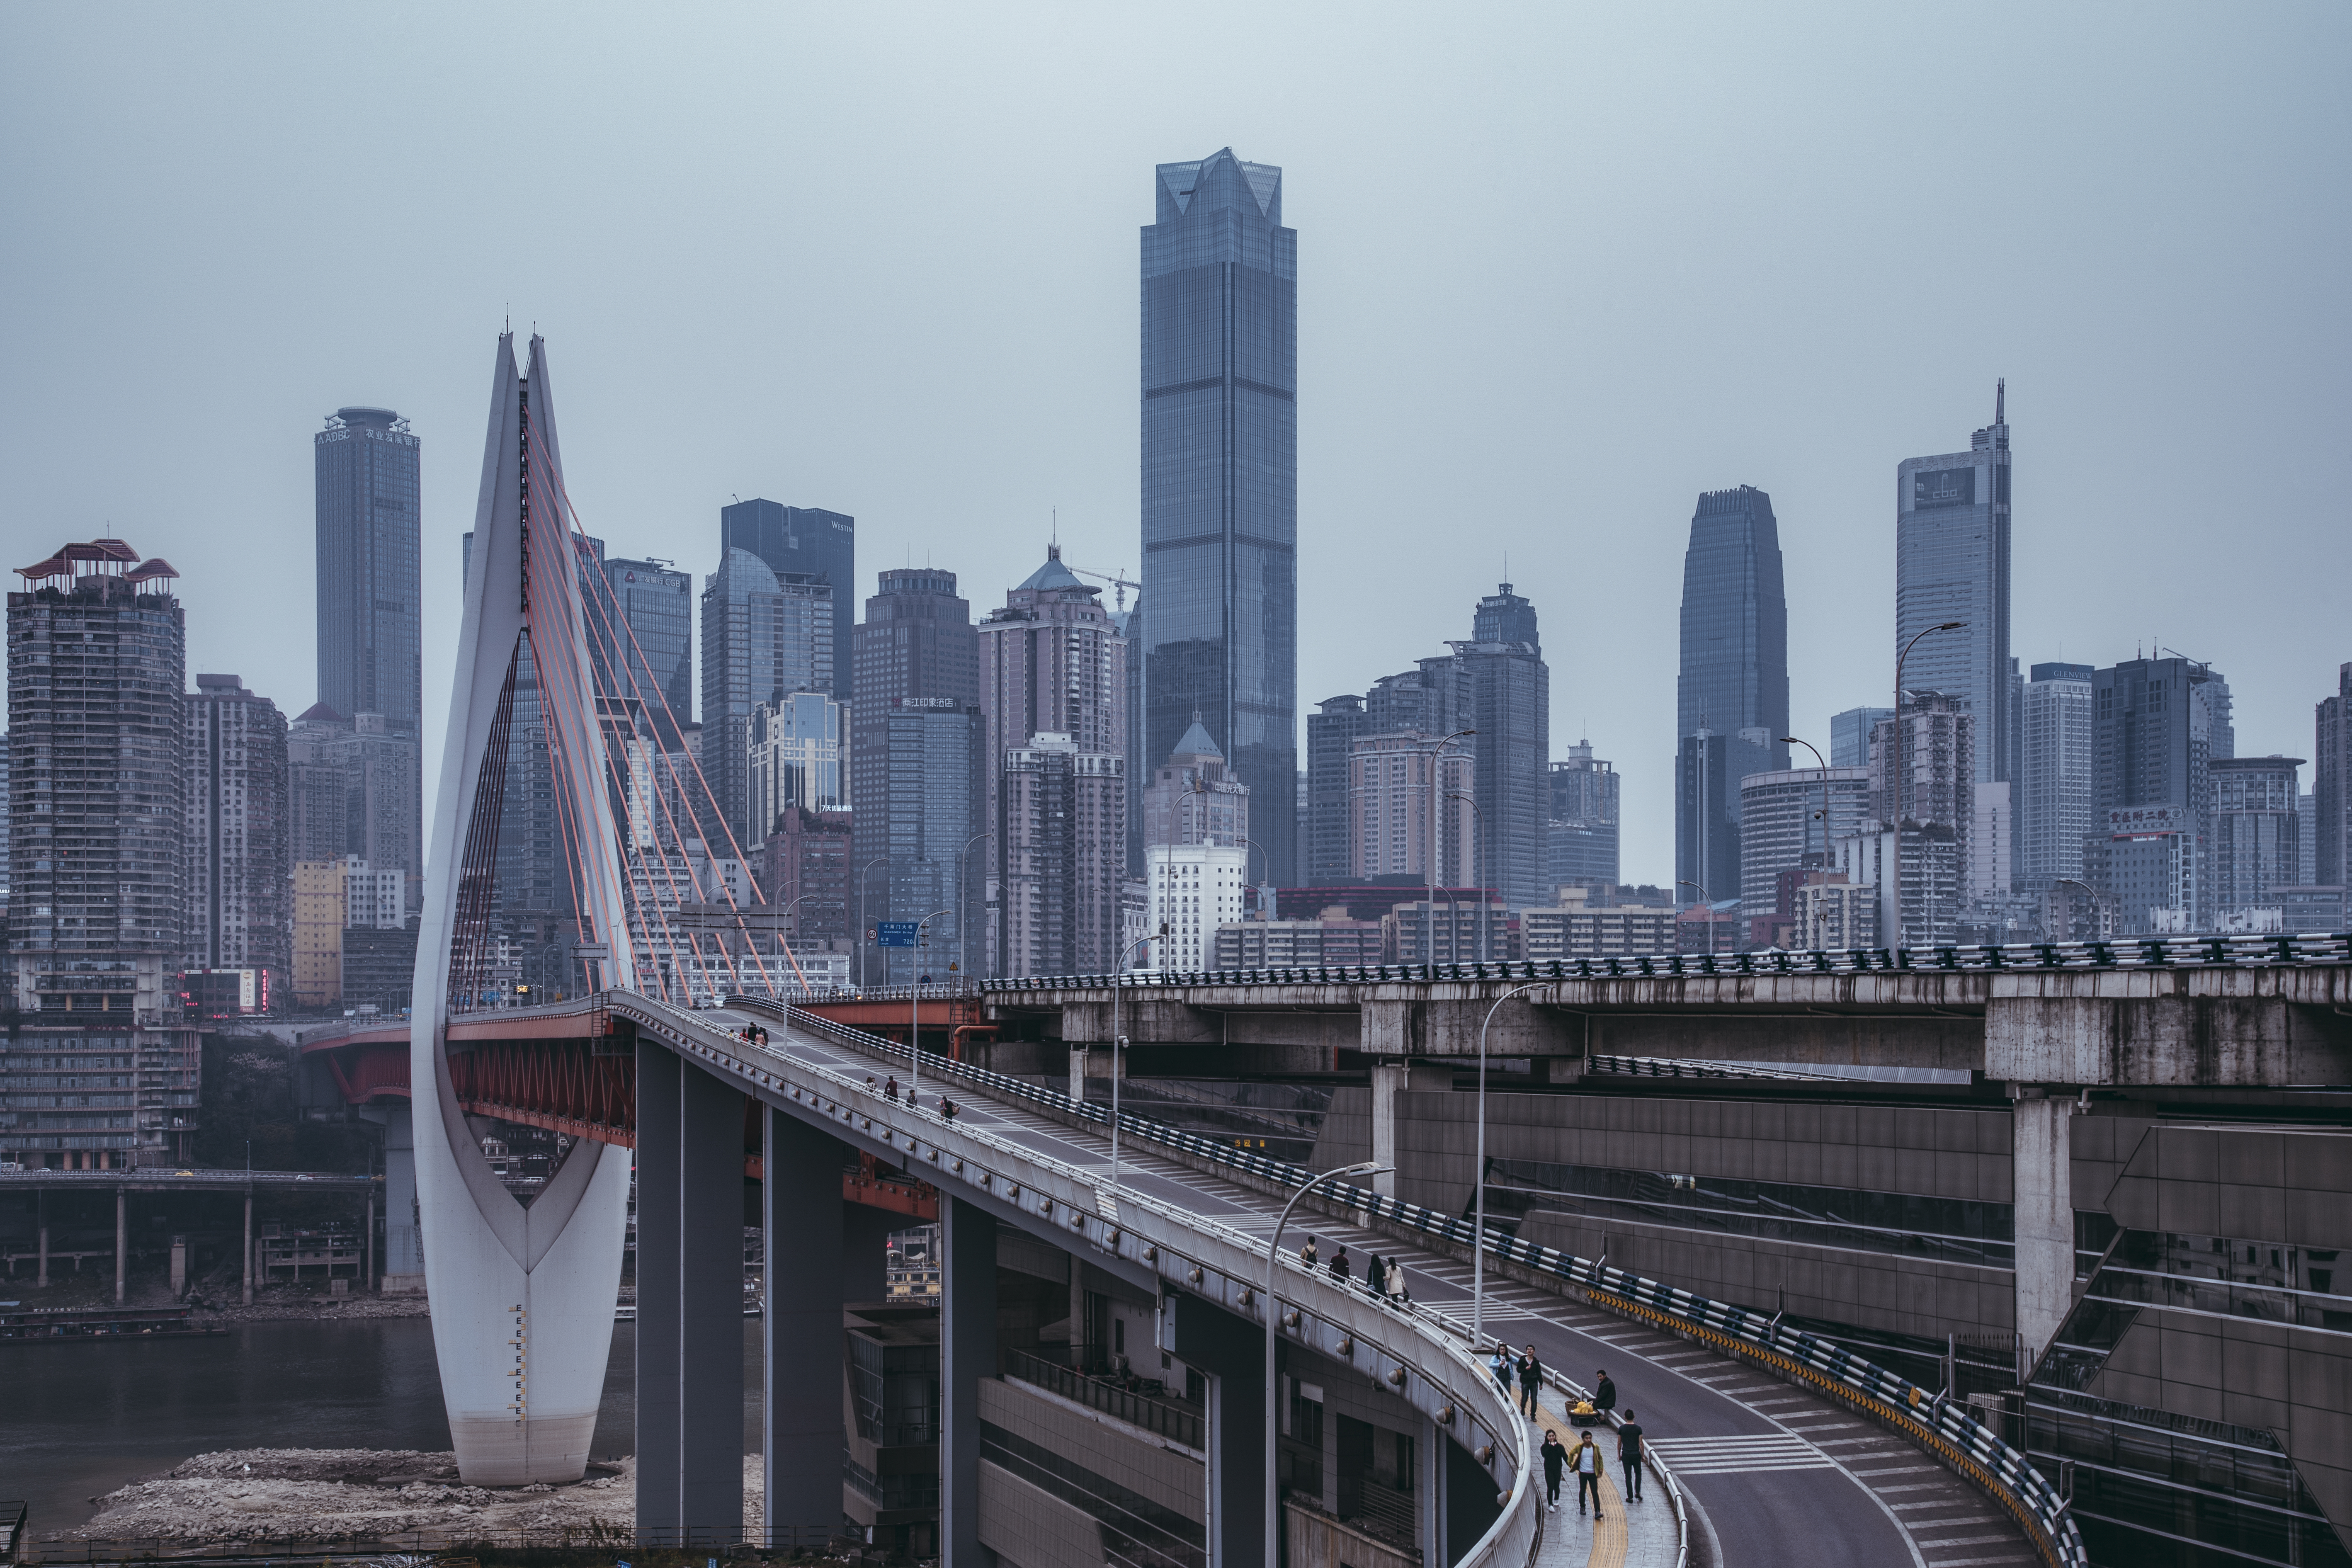 The view of the CBD of Chongqing in a cloudy day.